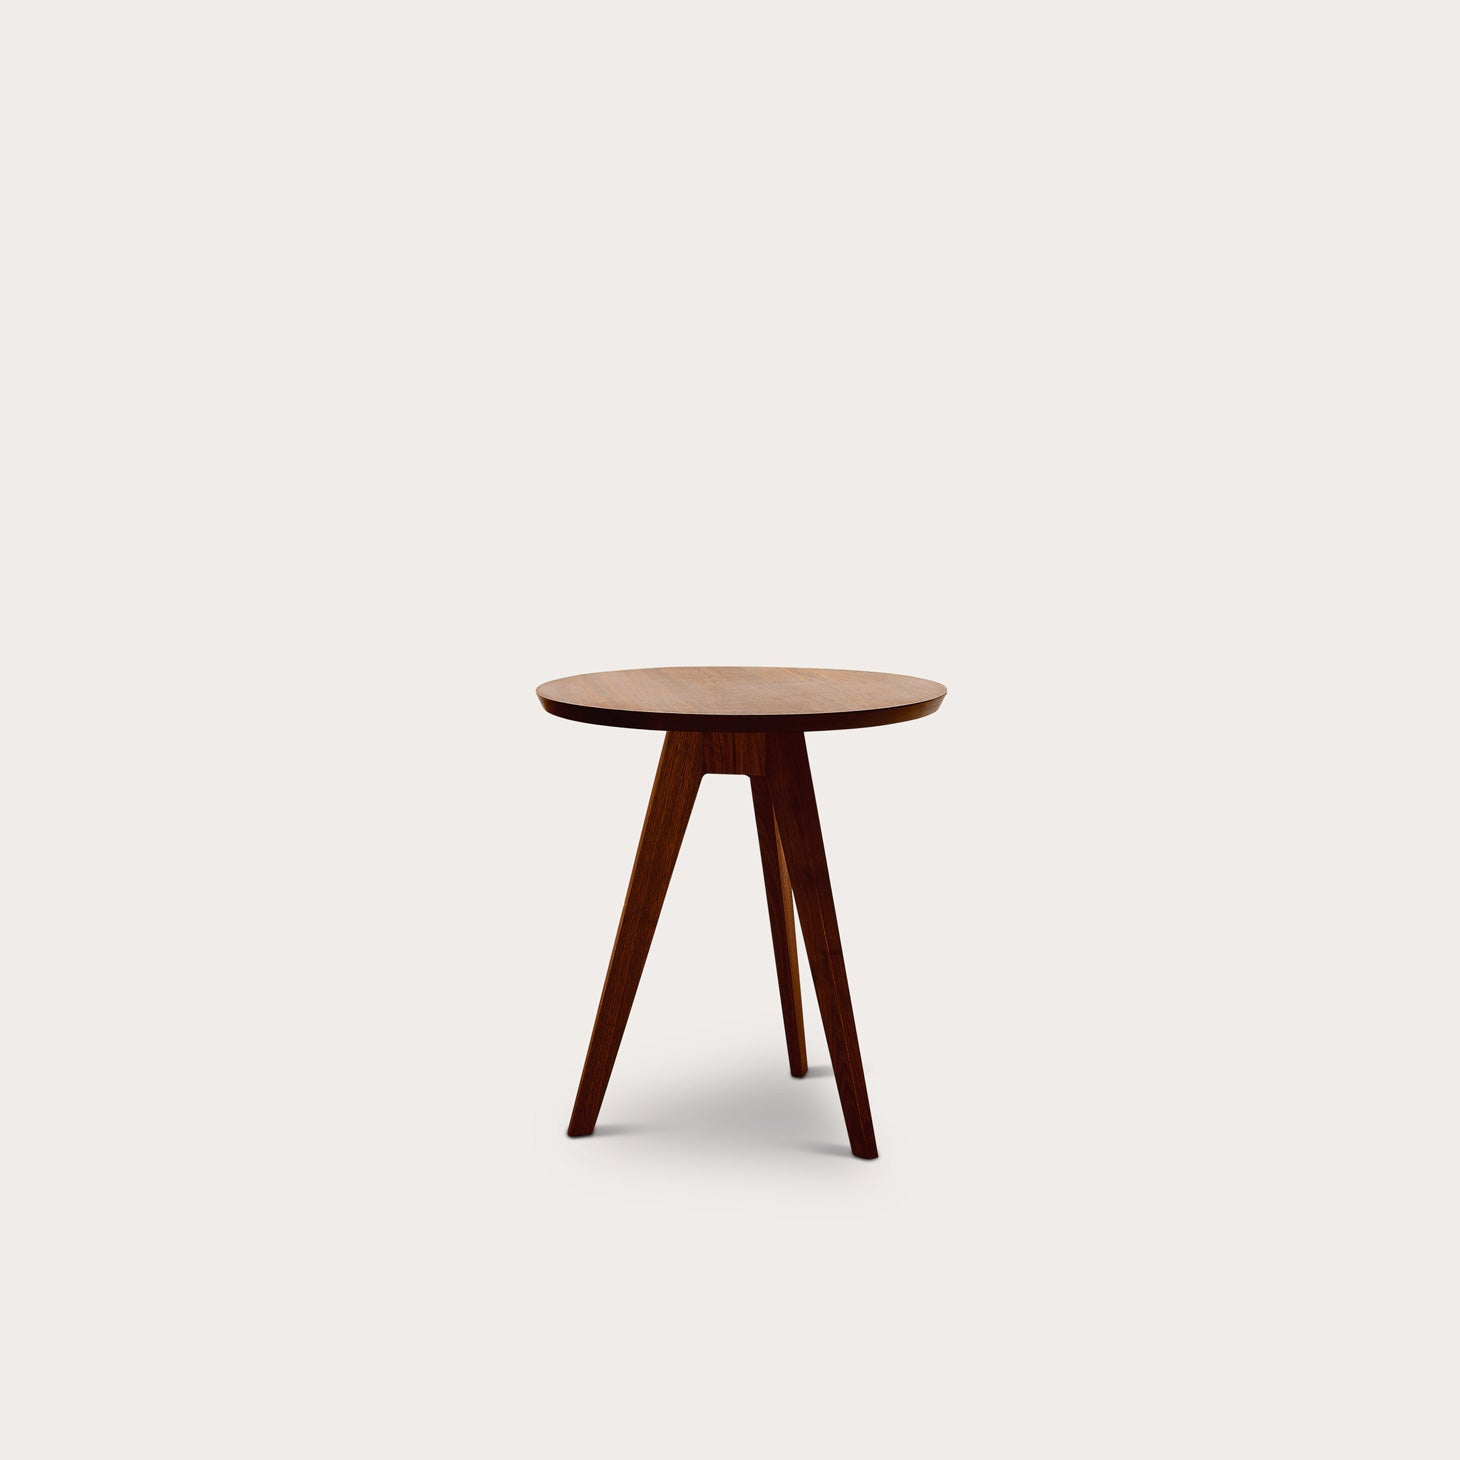 Cena Round Cafe Table Tables Birgit Gämmerler Designer Furniture Sku: 006-230-10296